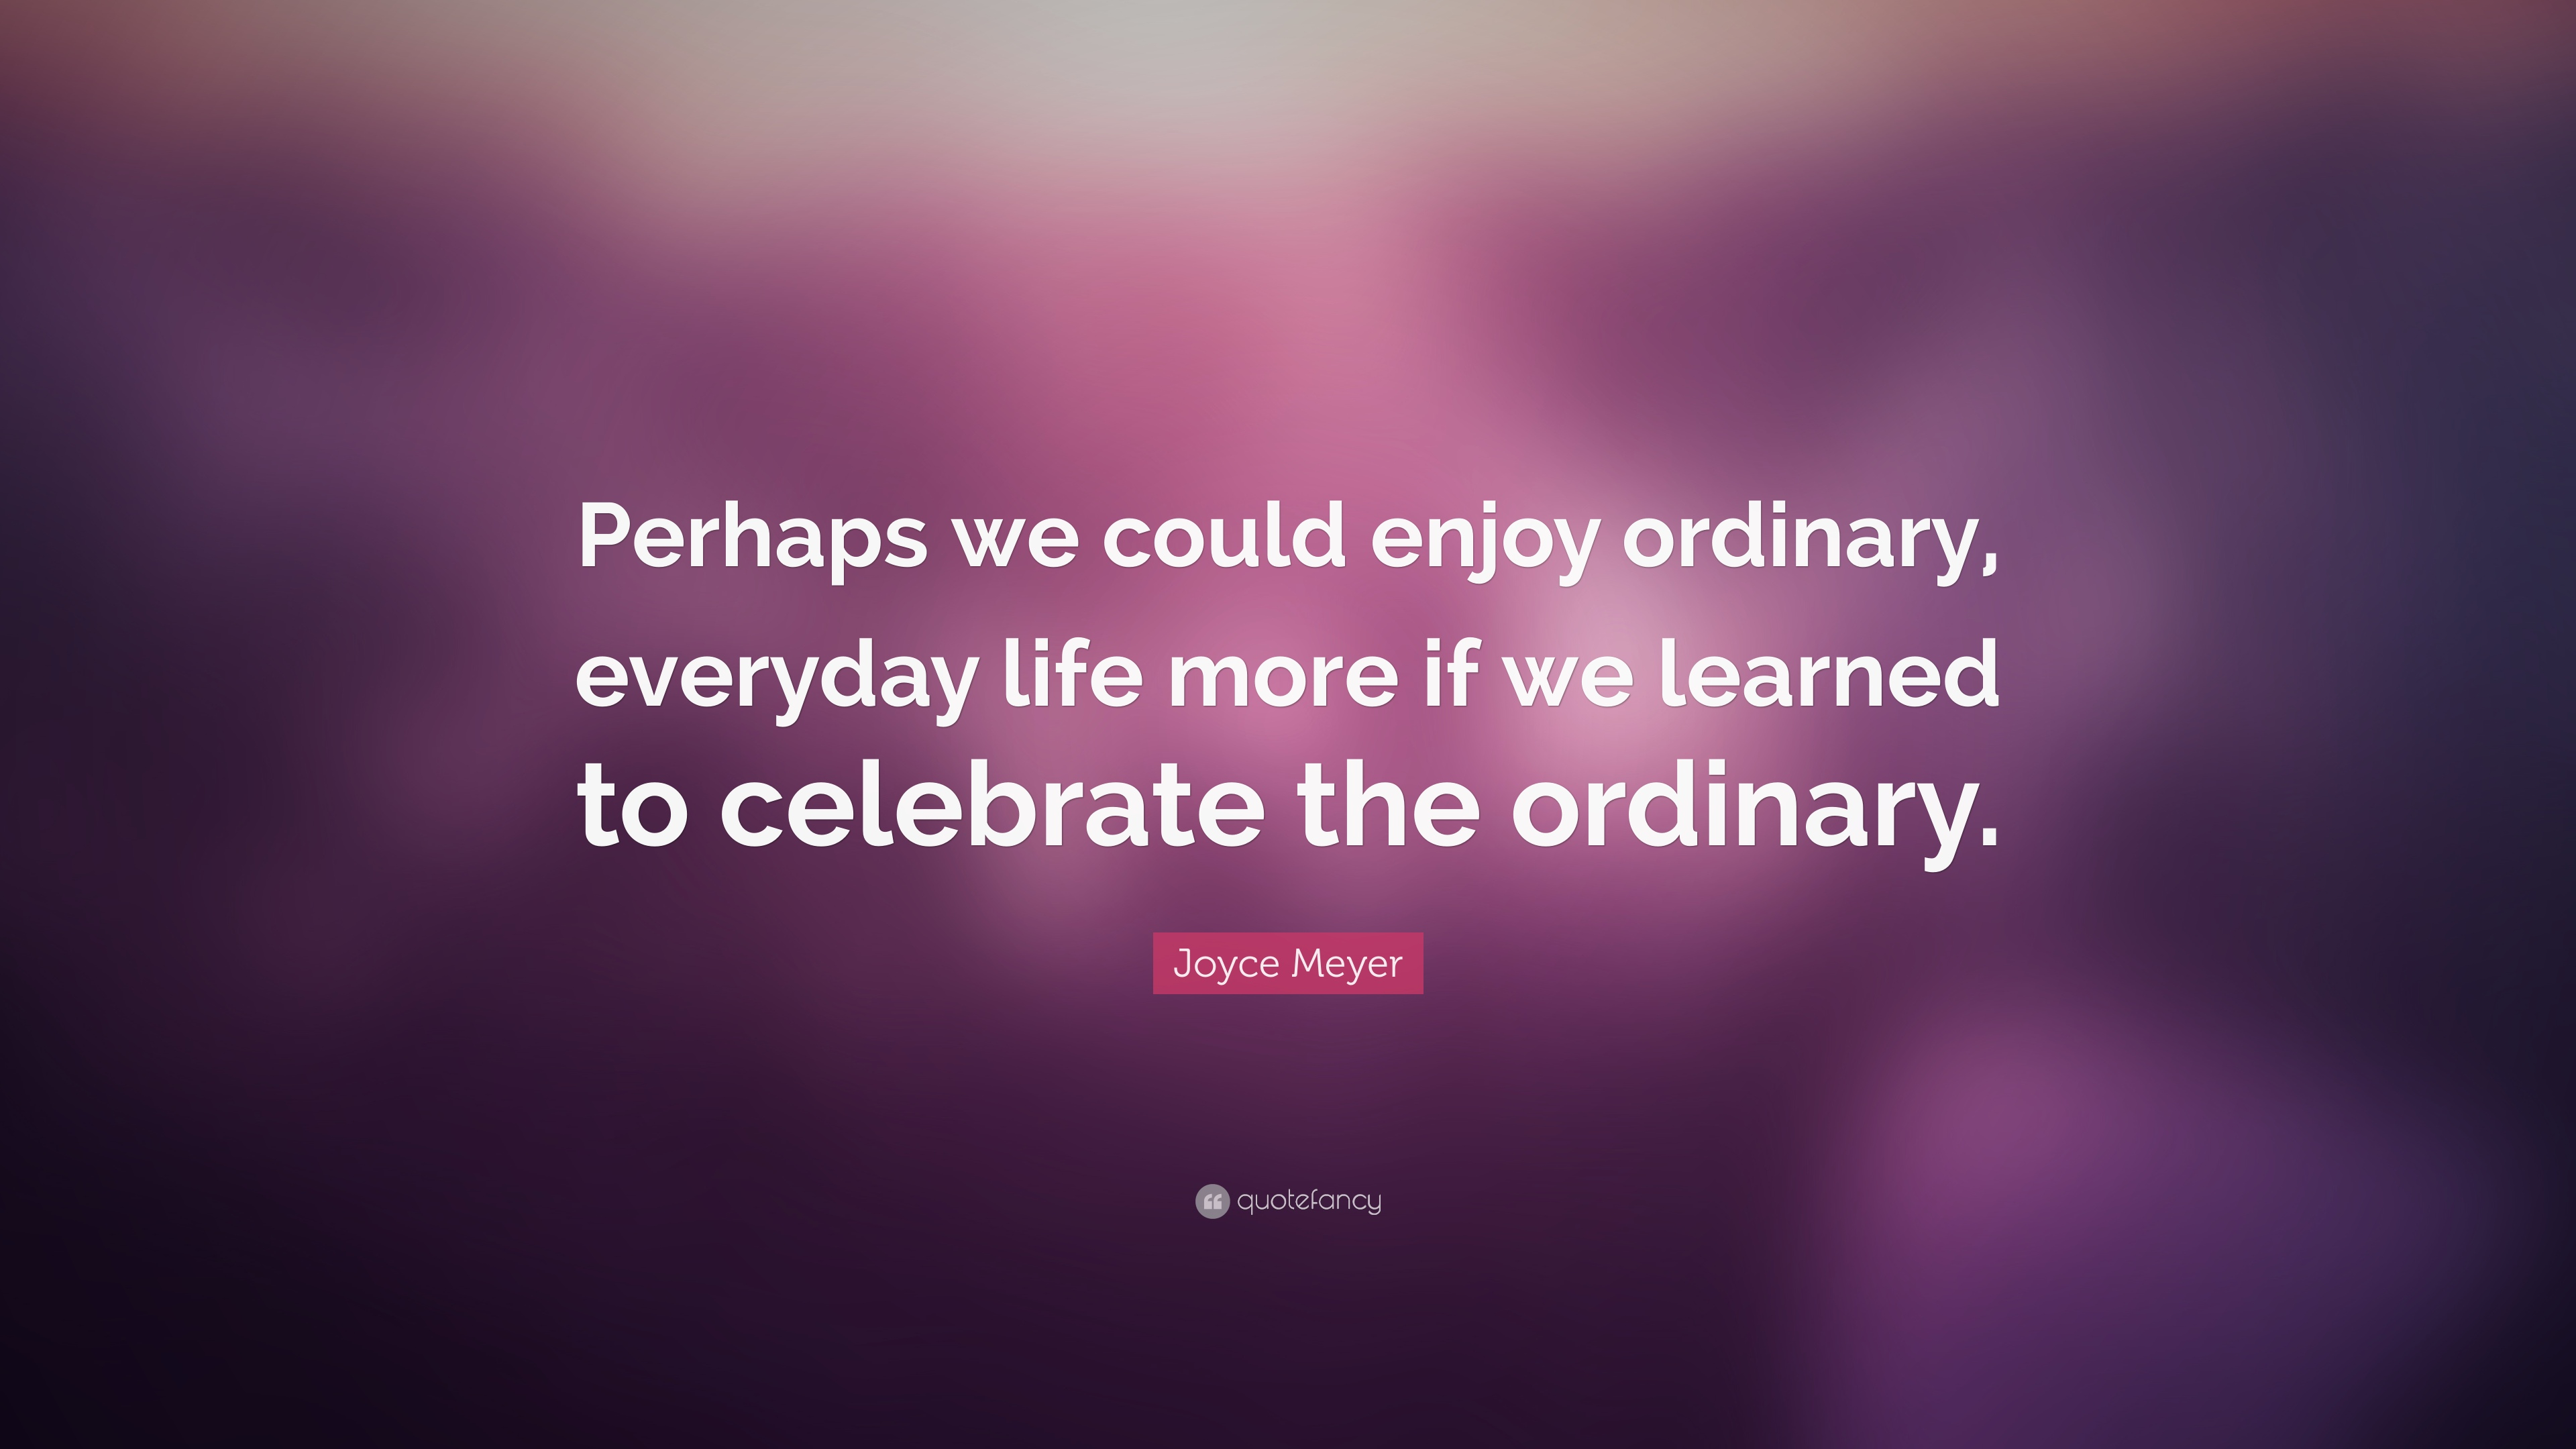 Wonderful Joyce Meyer Quote: U201cPerhaps We Could Enjoy Ordinary, Everyday Life More If  We